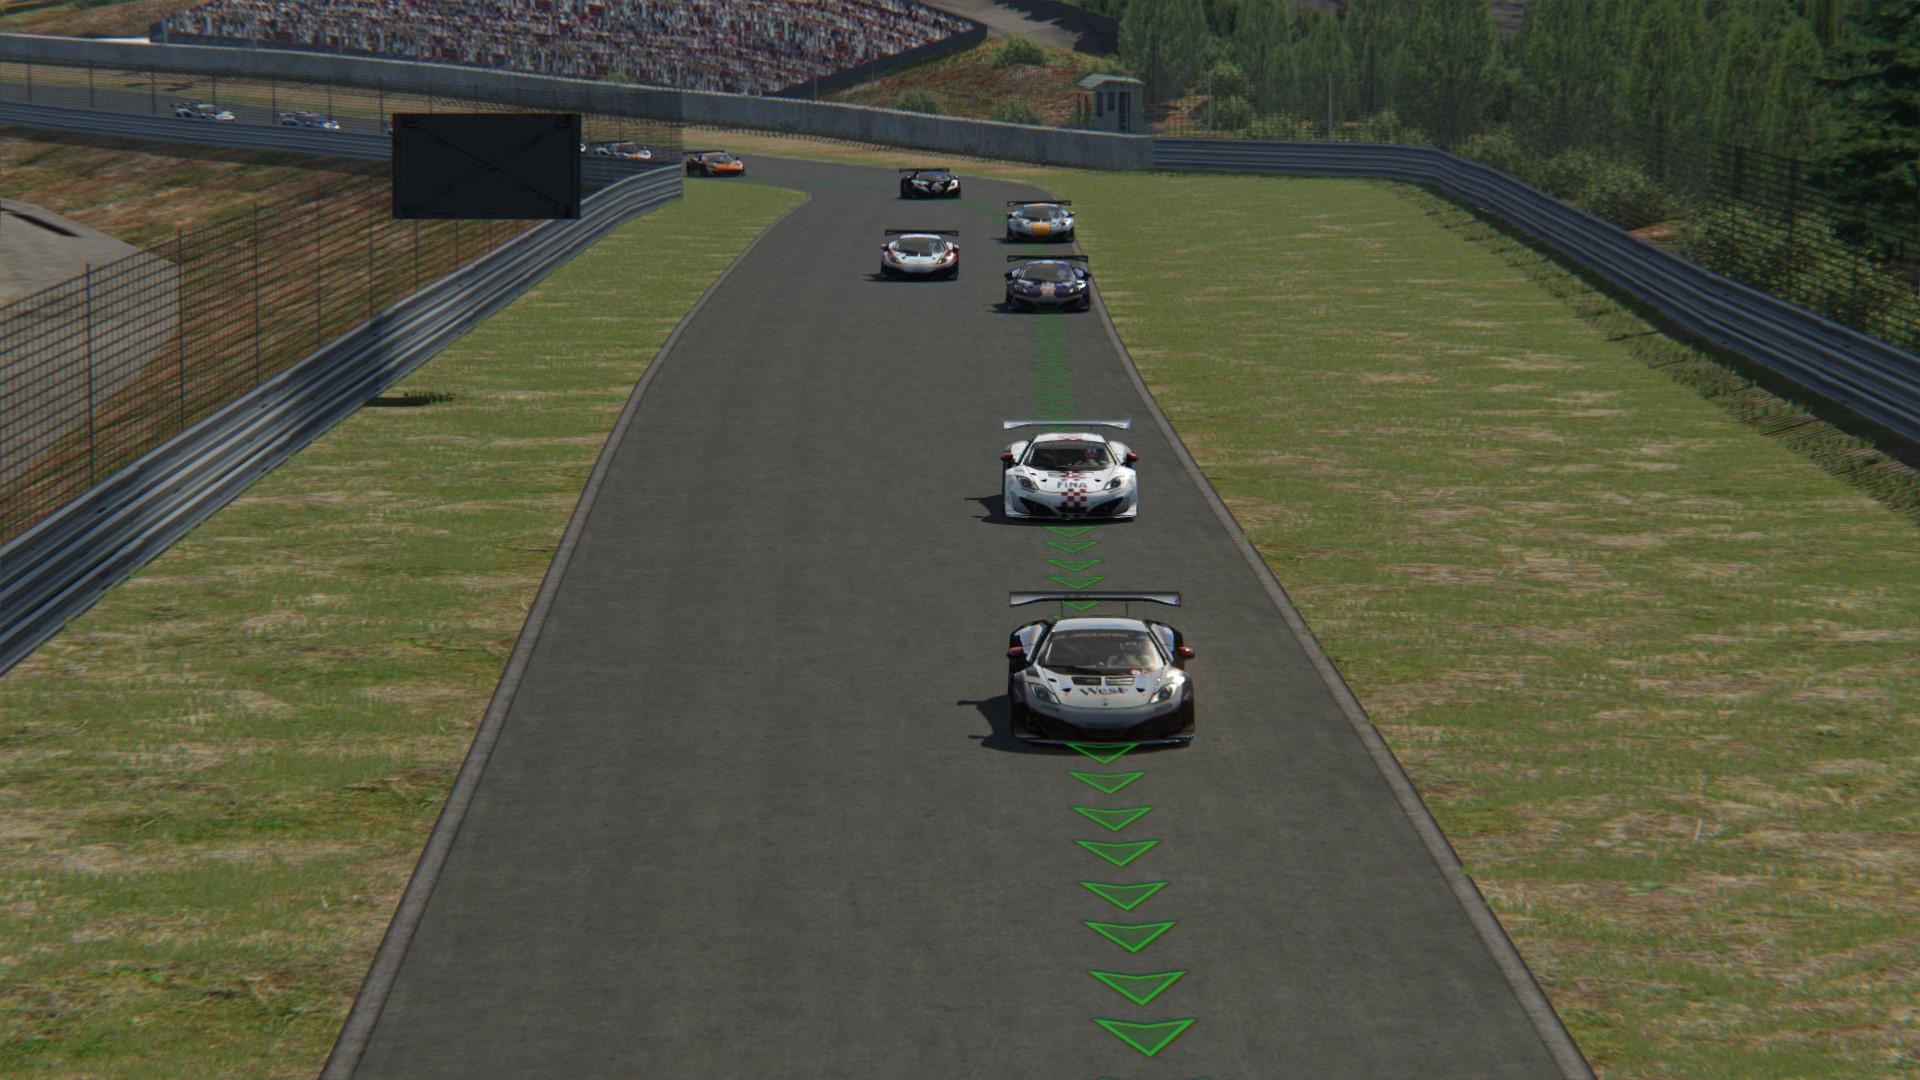 Screenshot_mclaren_mp412c_gt3_sportsland_sugo_7-4-116-10-0-23.jpg